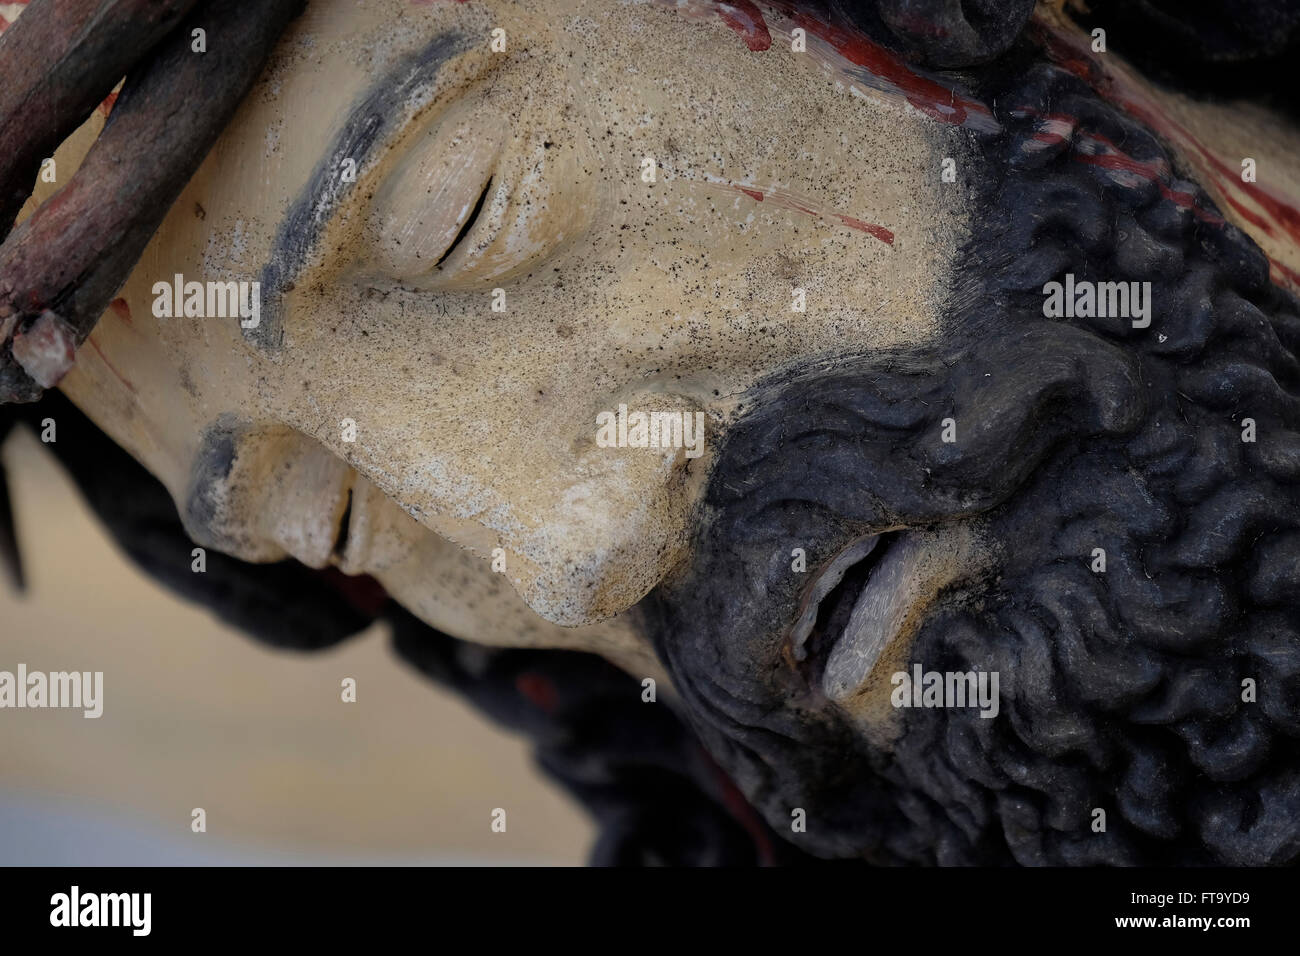 Jesus statue in St. Margareth Church Cemetery in Bayrischzell, Bavaria, Germany. - Stock Image